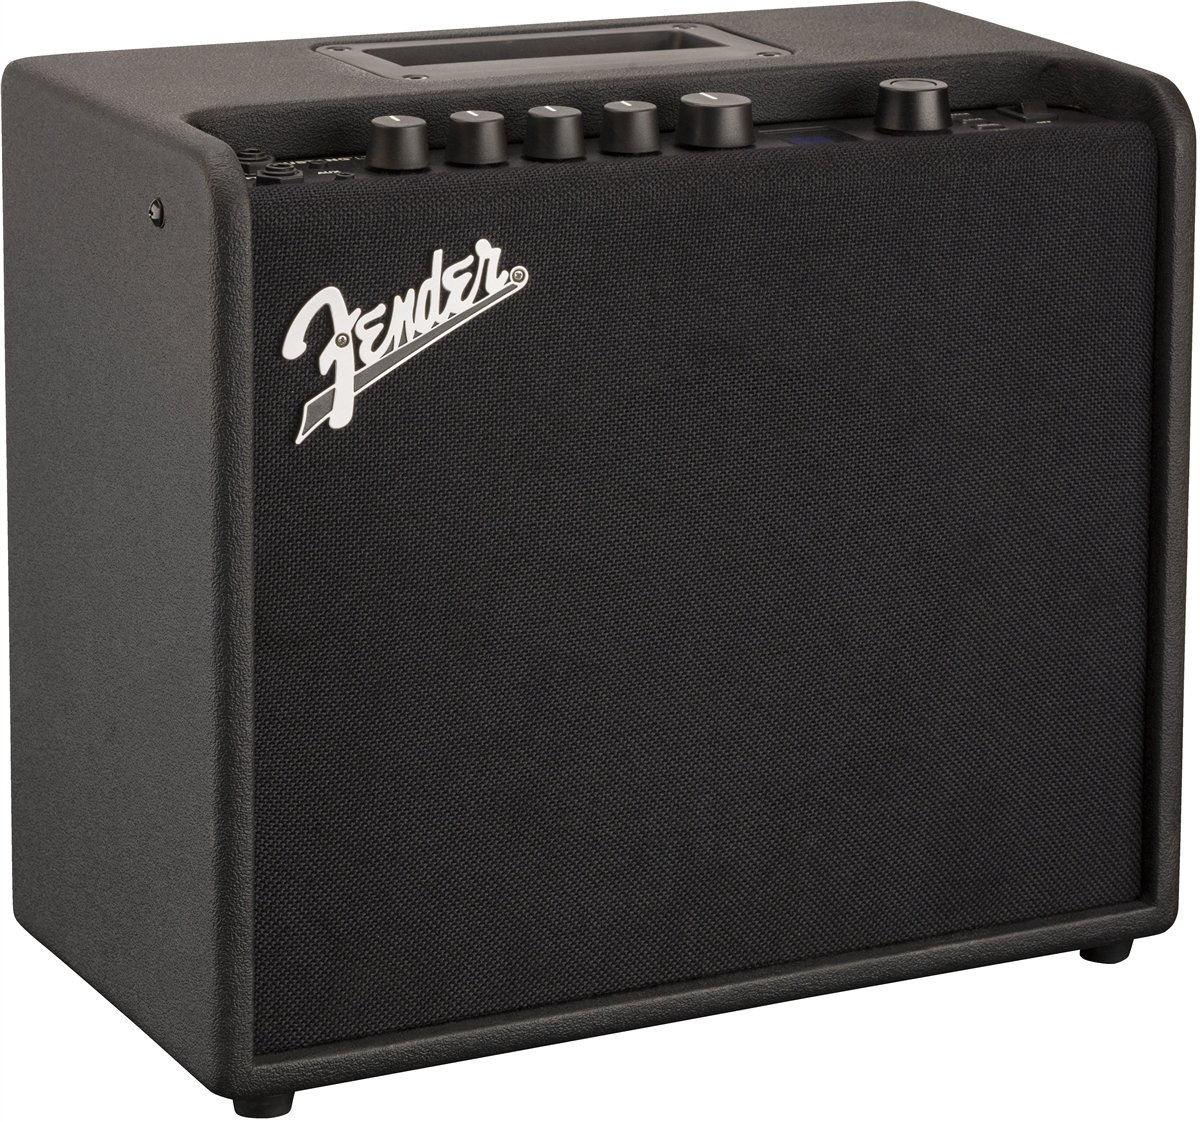 Fender Mustang LT25 Combo Amplifier